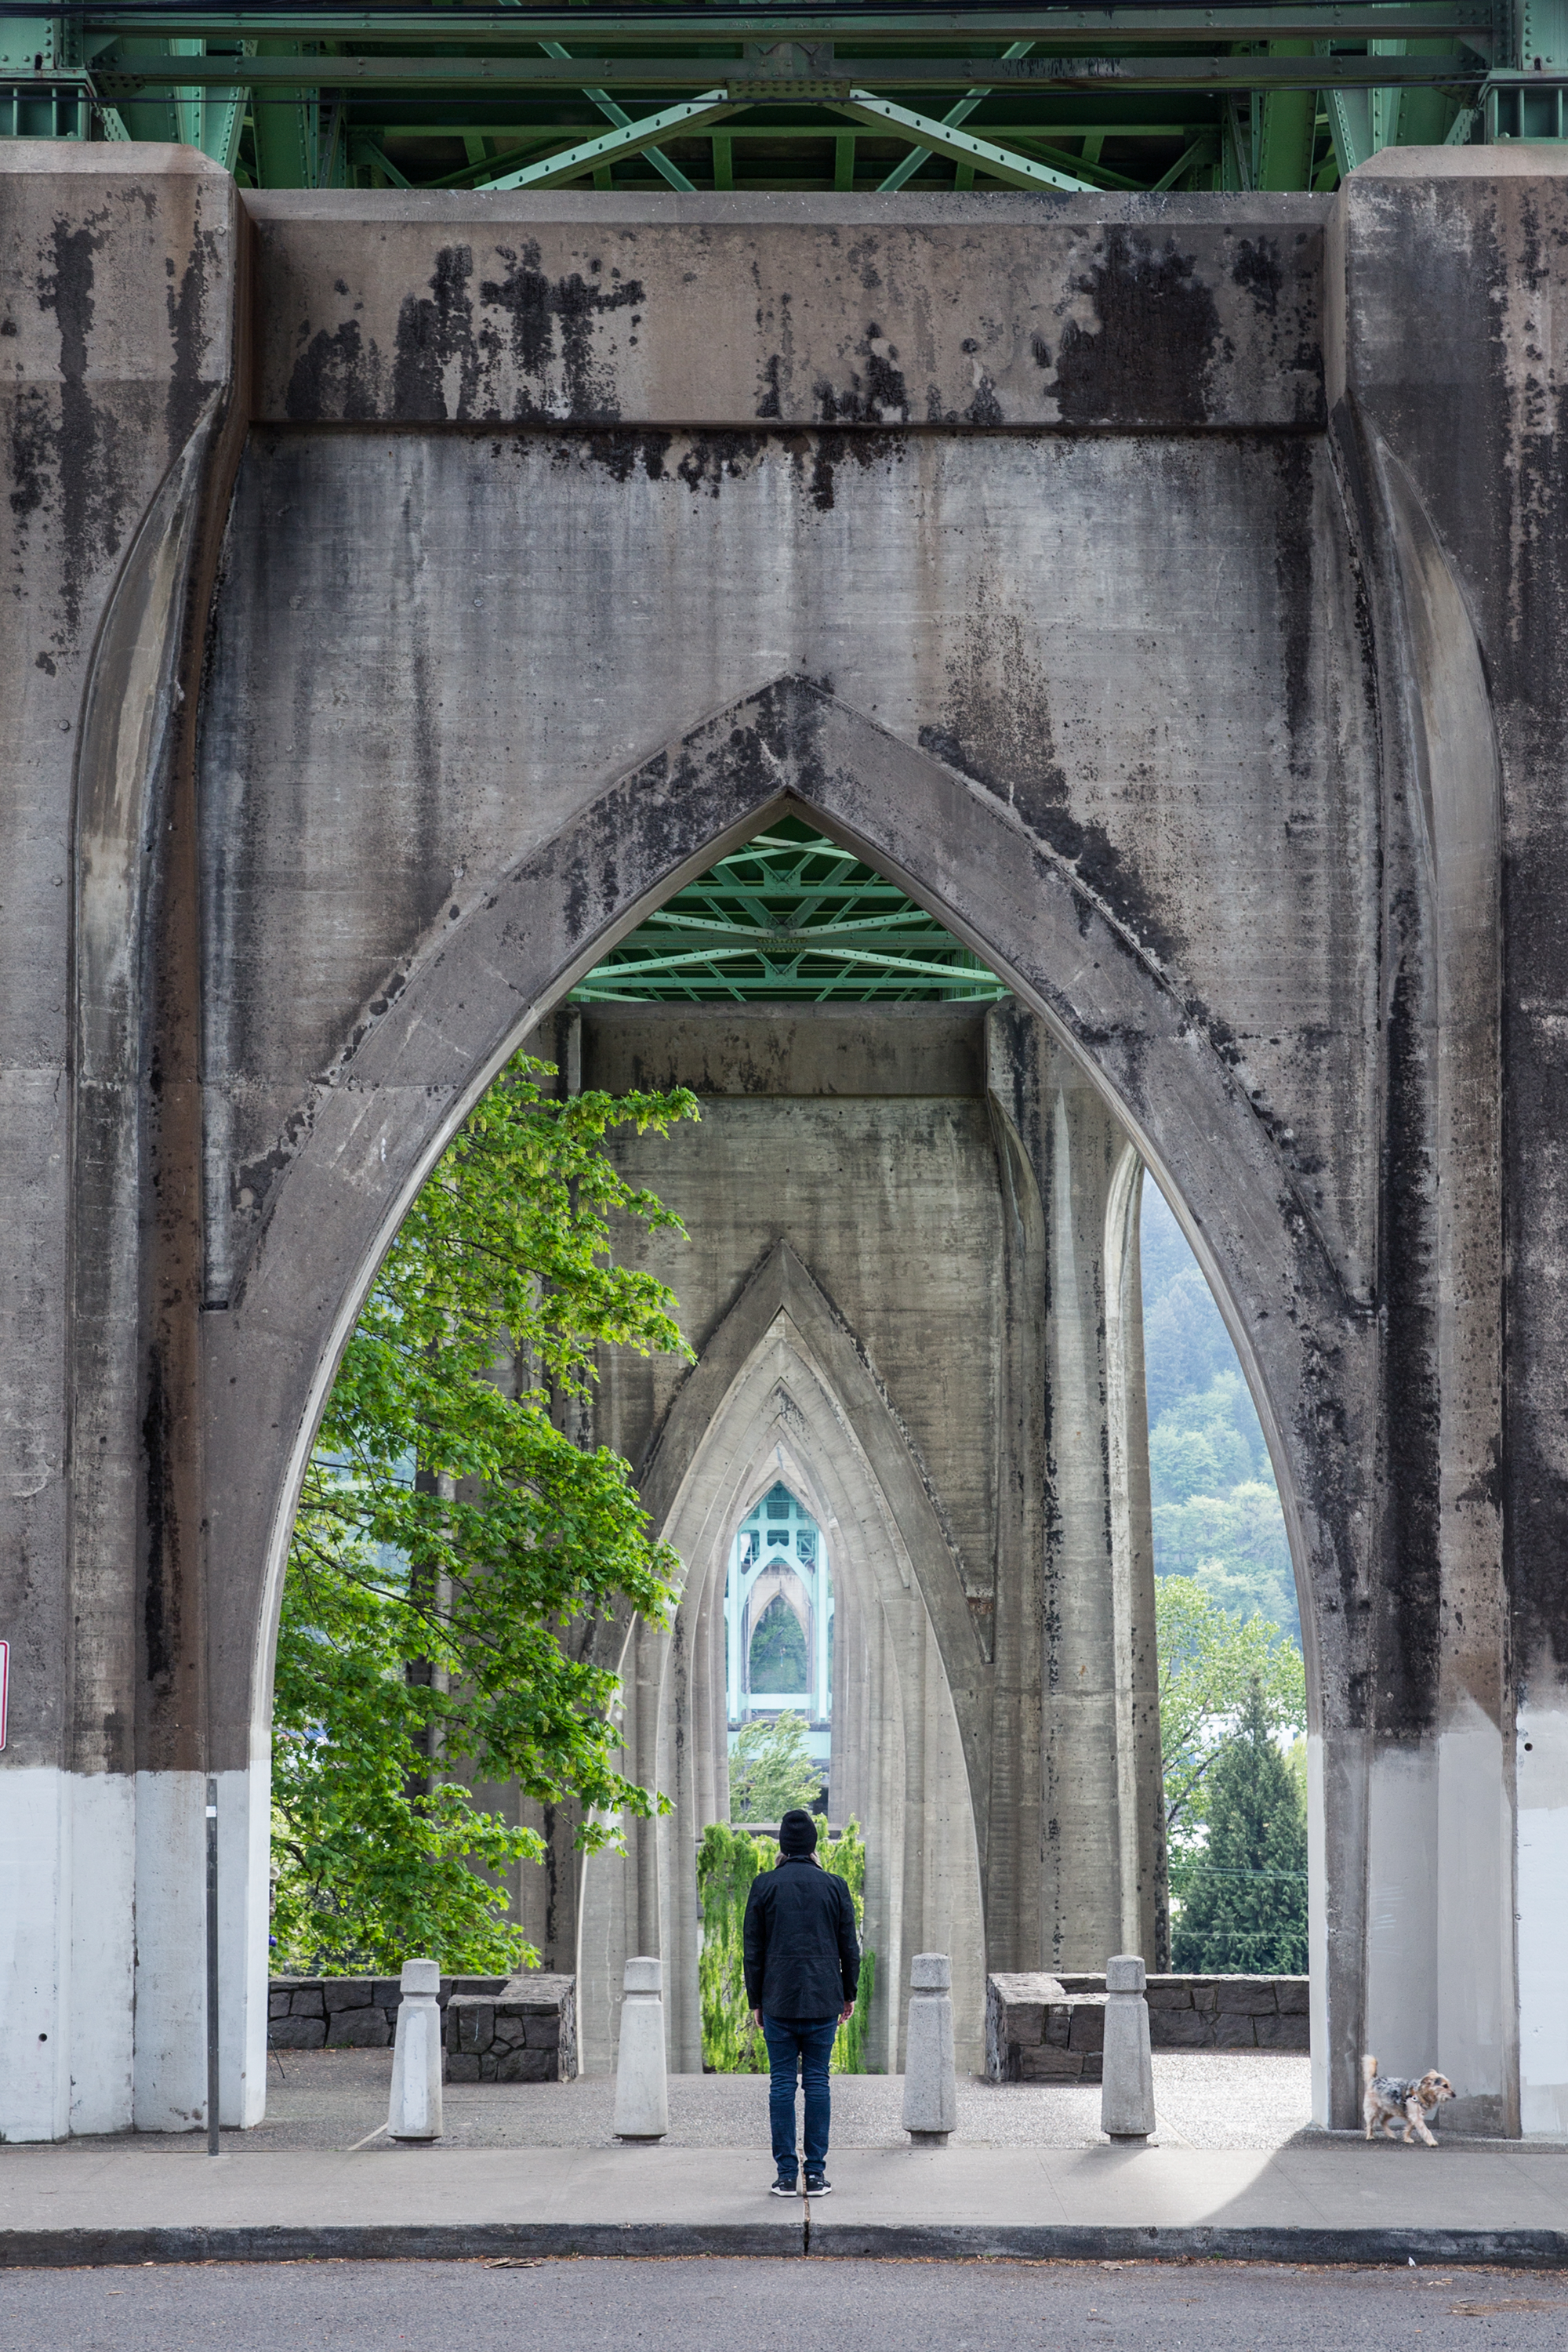 St. Johns Bridge, Portland